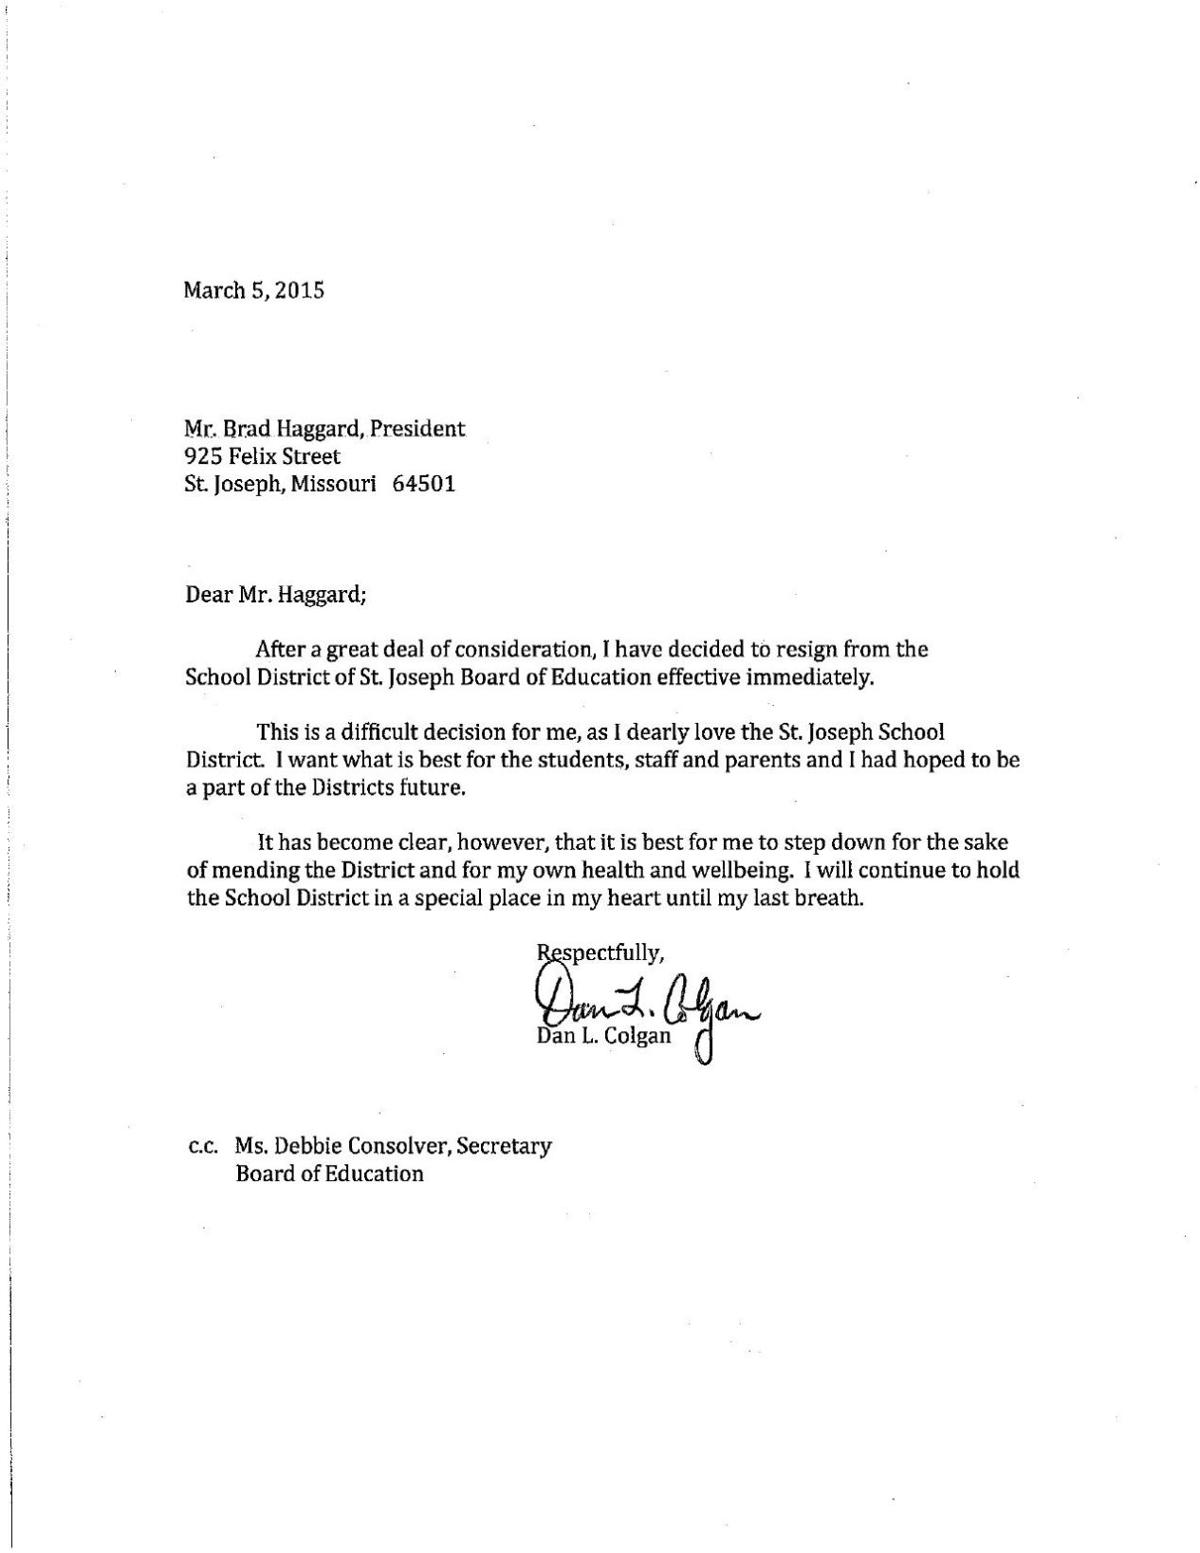 Letter Of Resignation From A Board from bloximages.newyork1.vip.townnews.com